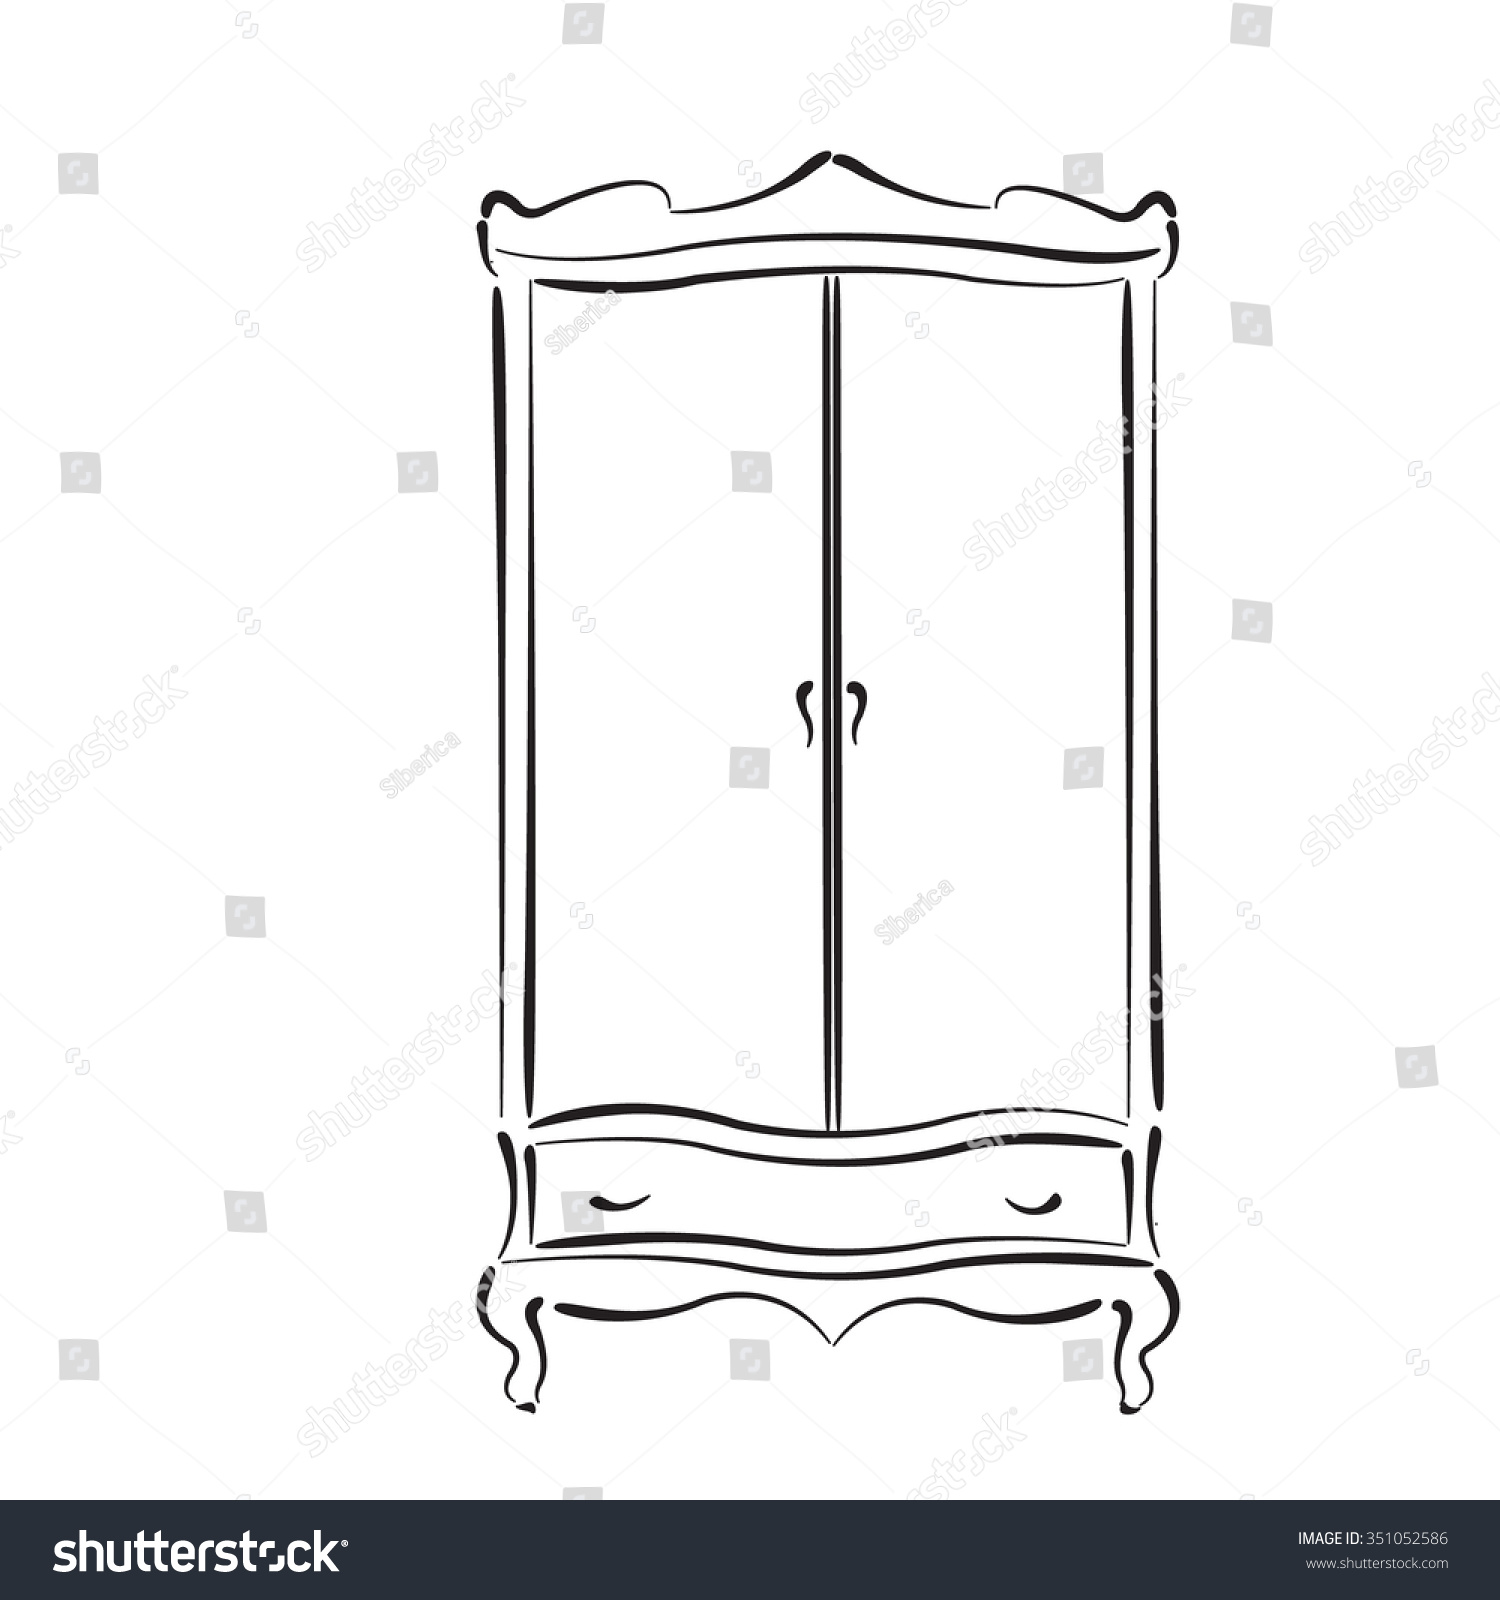 Sketched Vintage Wardrobe. Vintage Closet Vector Illustration.